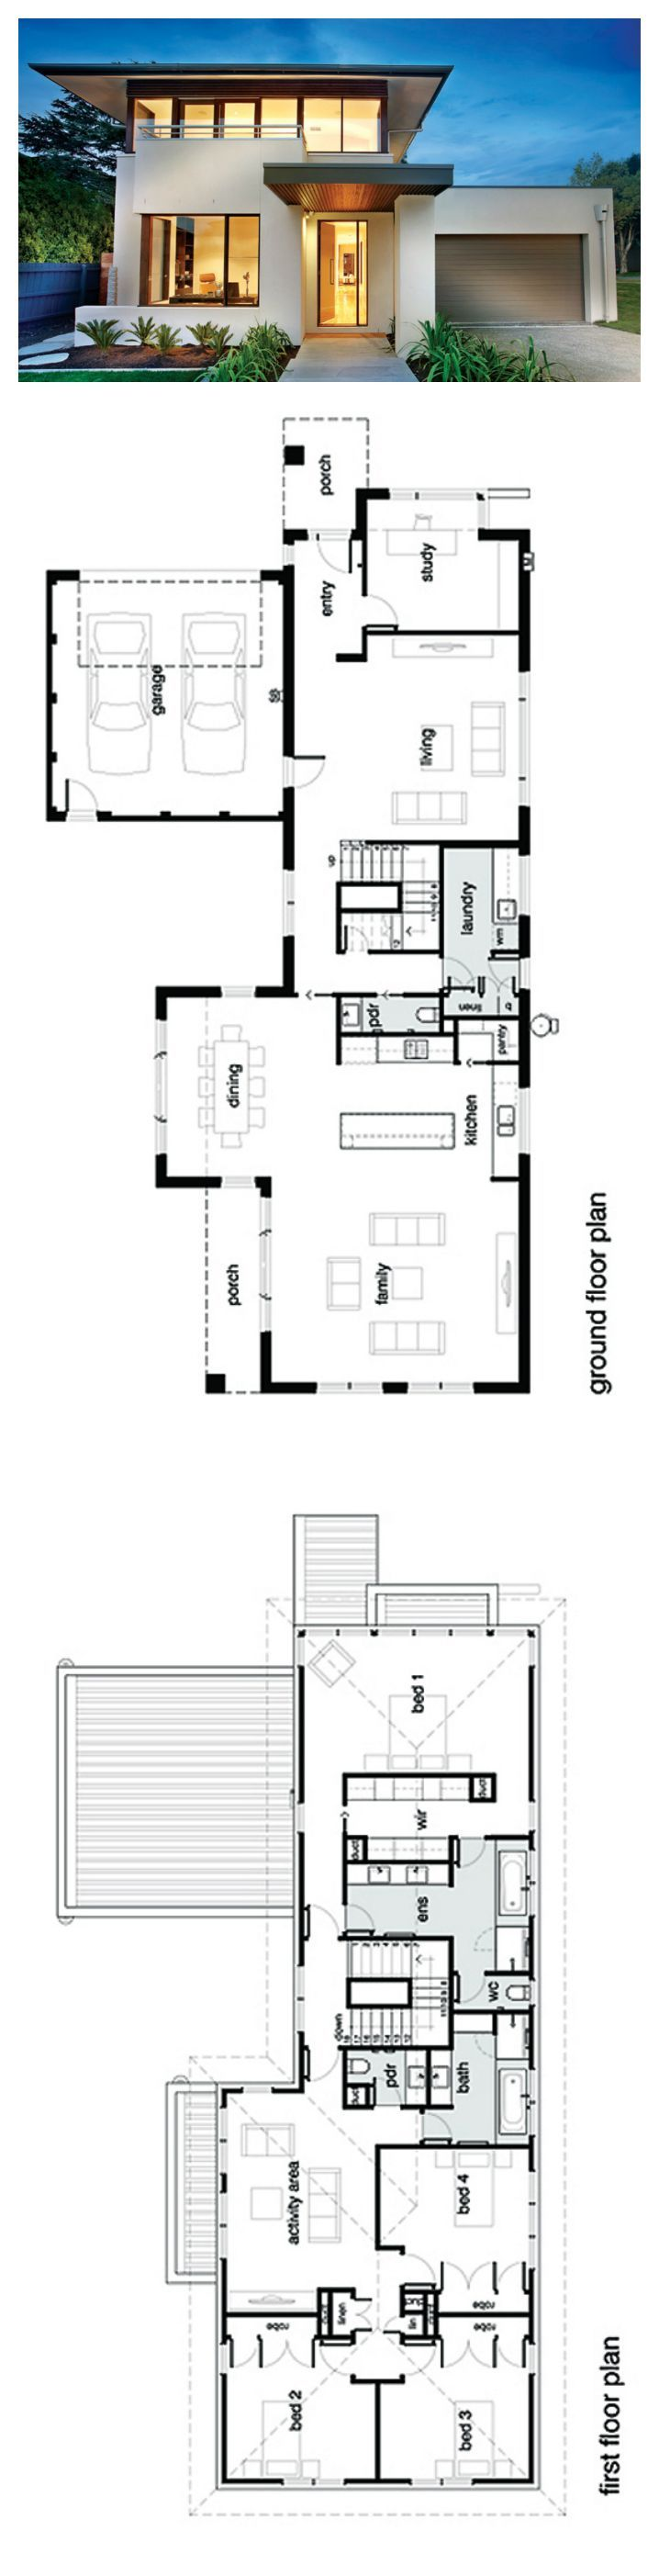 Best 25 modern house plans ideas on pinterest for Two story living room house plans